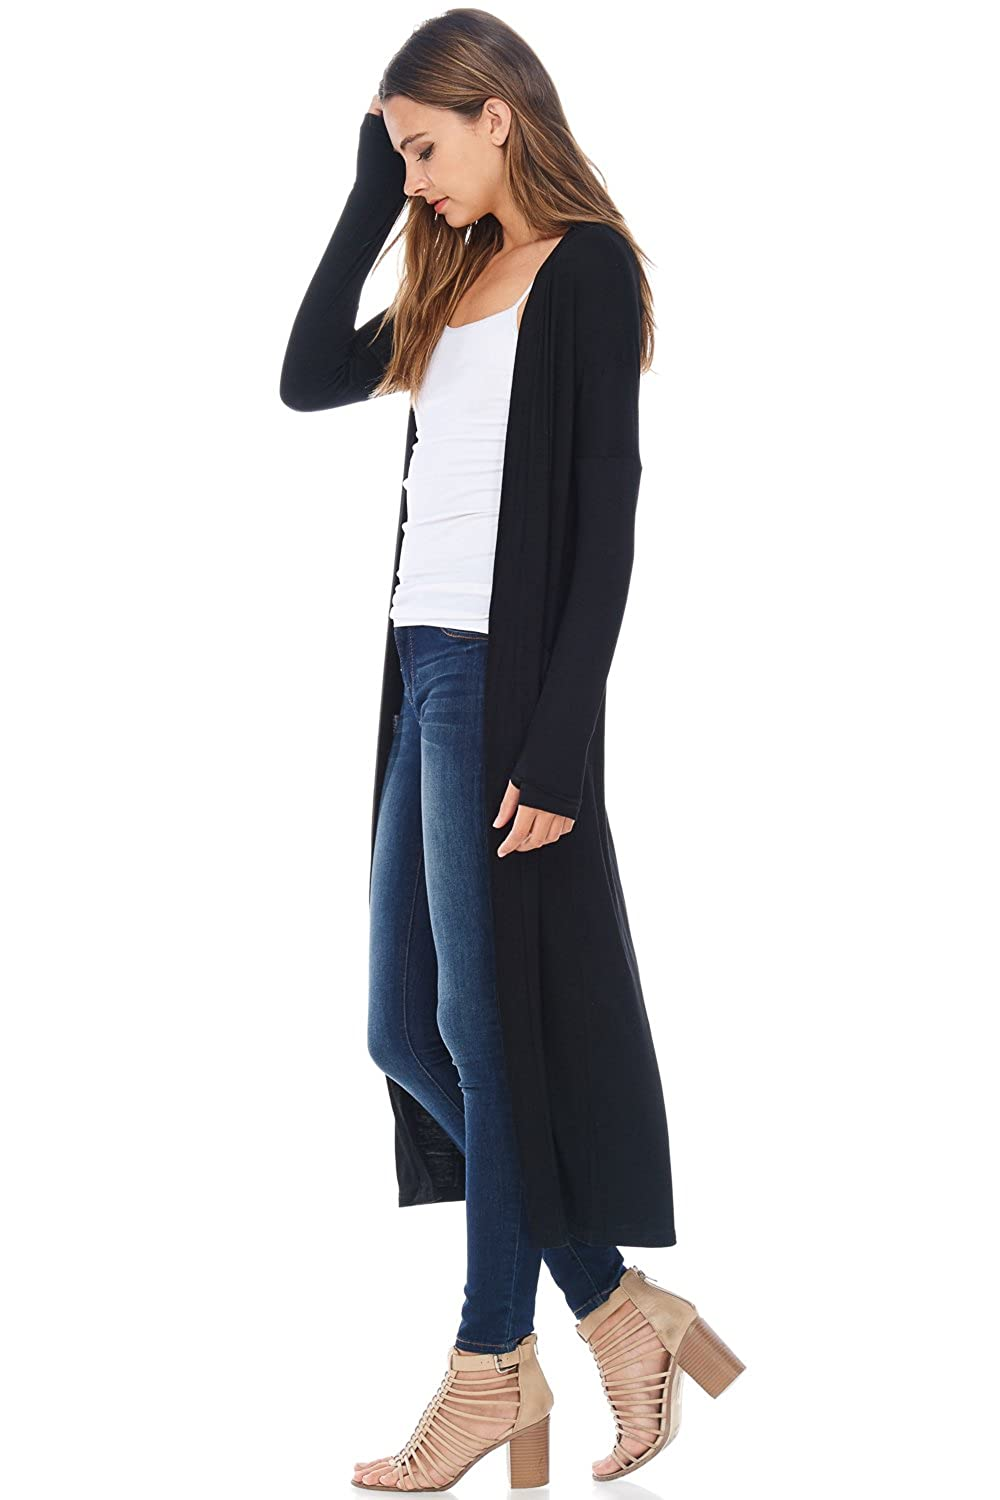 A D Womens Maxi Duster Jersey Cardigan Sweater W/ Pockets at ...